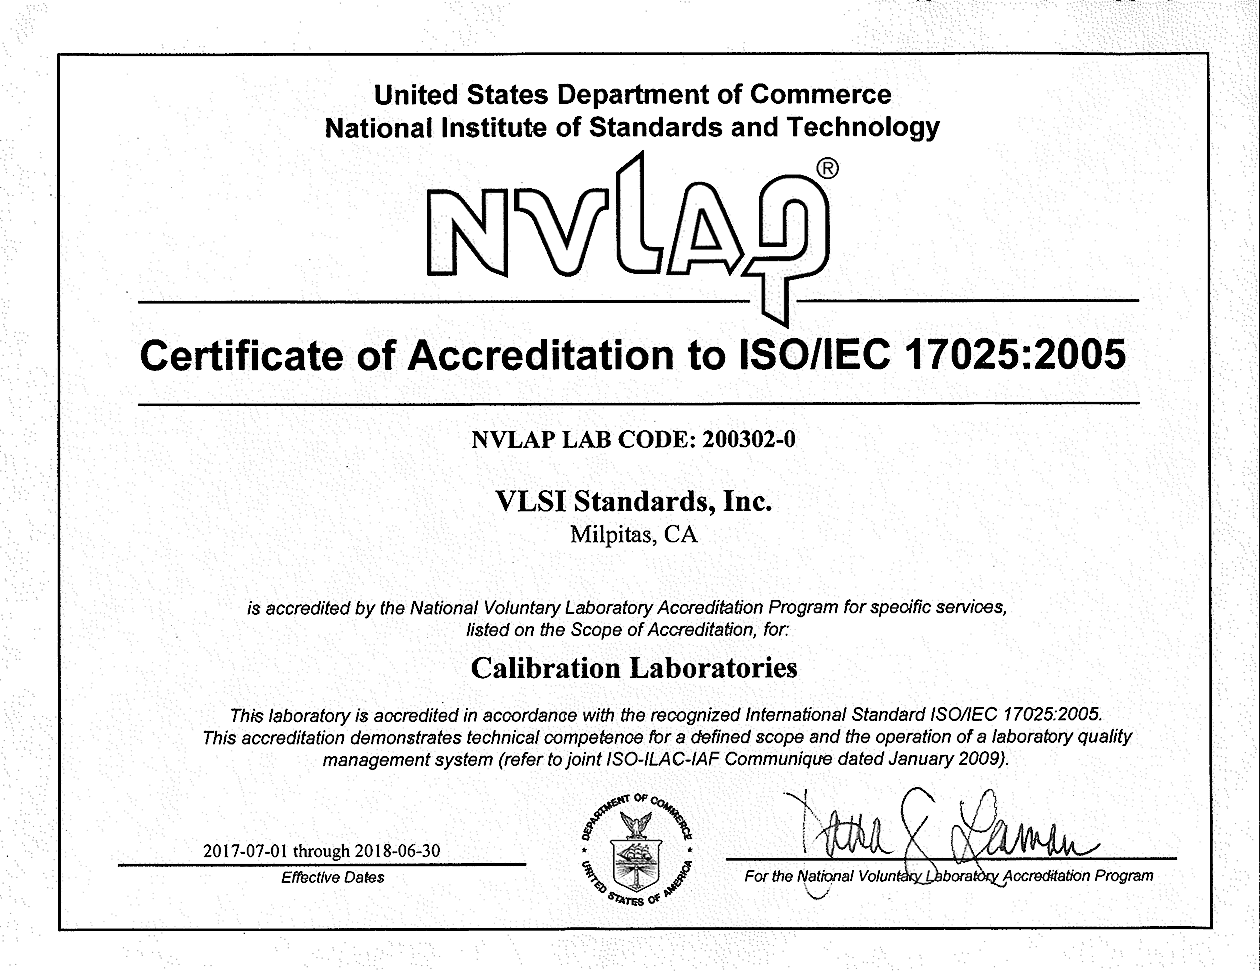 Iso and nvlap certification vlsi quality vlsi nvlap certificate of accreditation to isoiec 170252005 lab code 200302 0 falaconquin